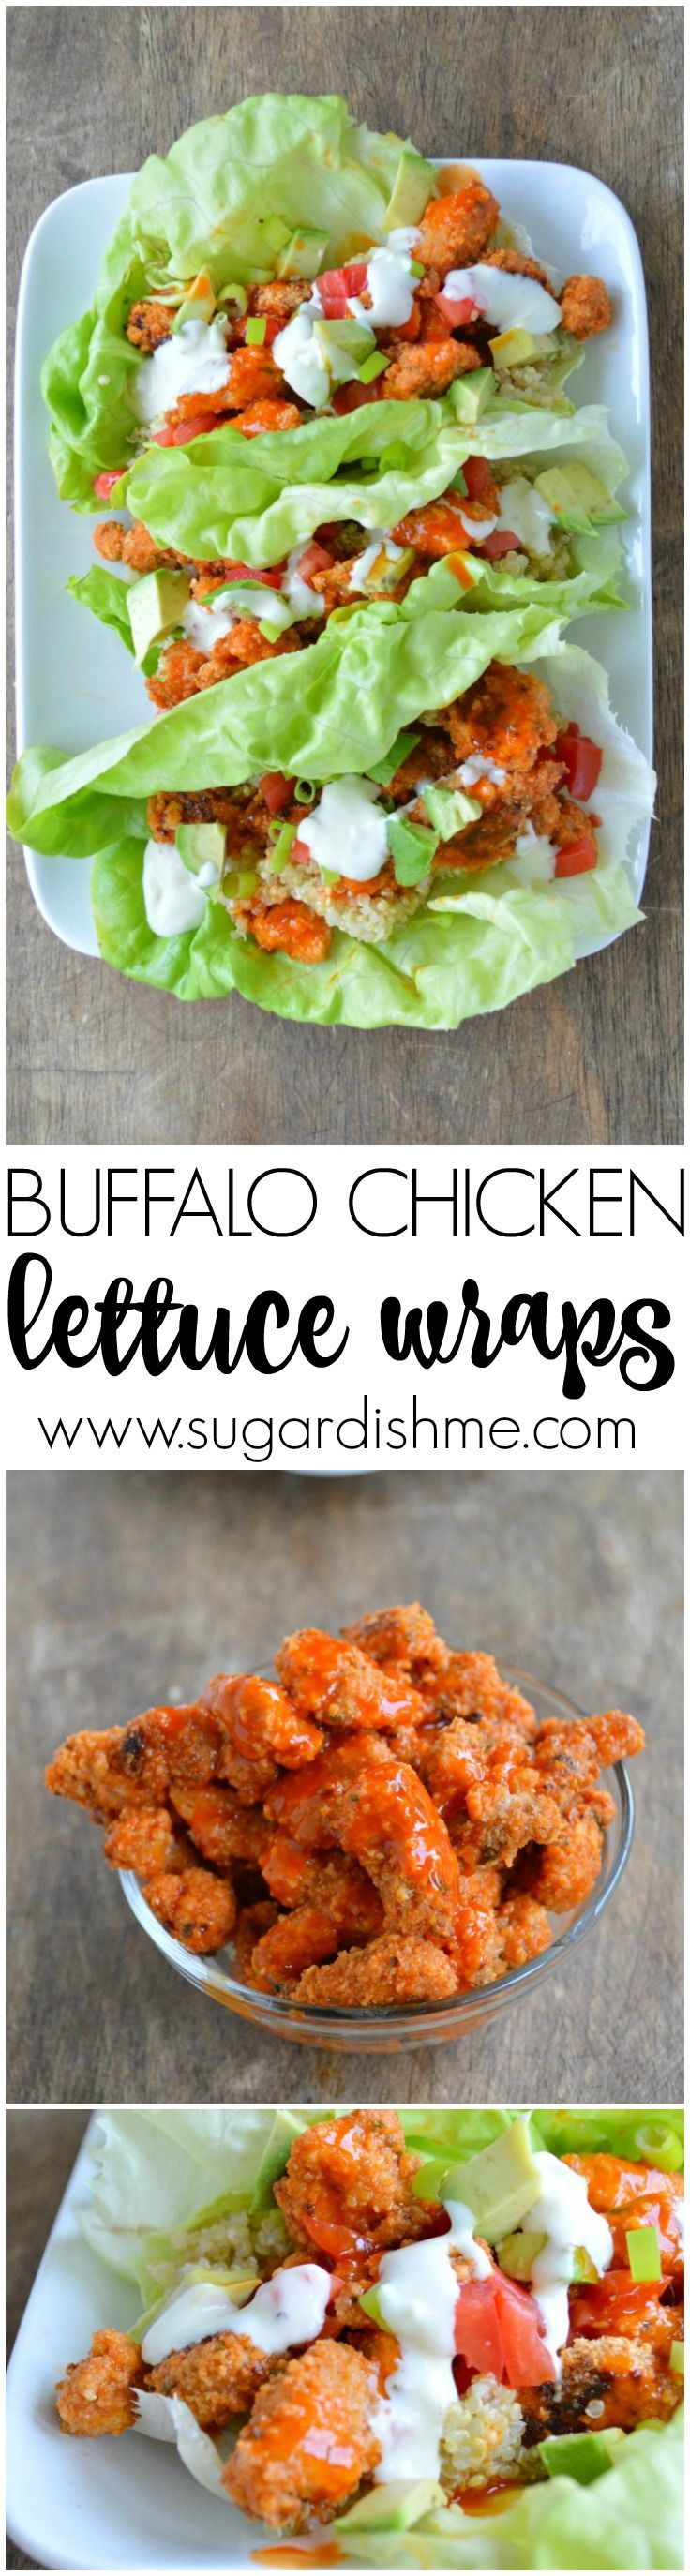 Buffalo chicken lettuce wraps receta comida recetas y saludable buffalo chicken lettuce wraps have been the top recipe on sugar dish me since 2014 light fresh and easy good for you but still tastes like junk food forumfinder Images